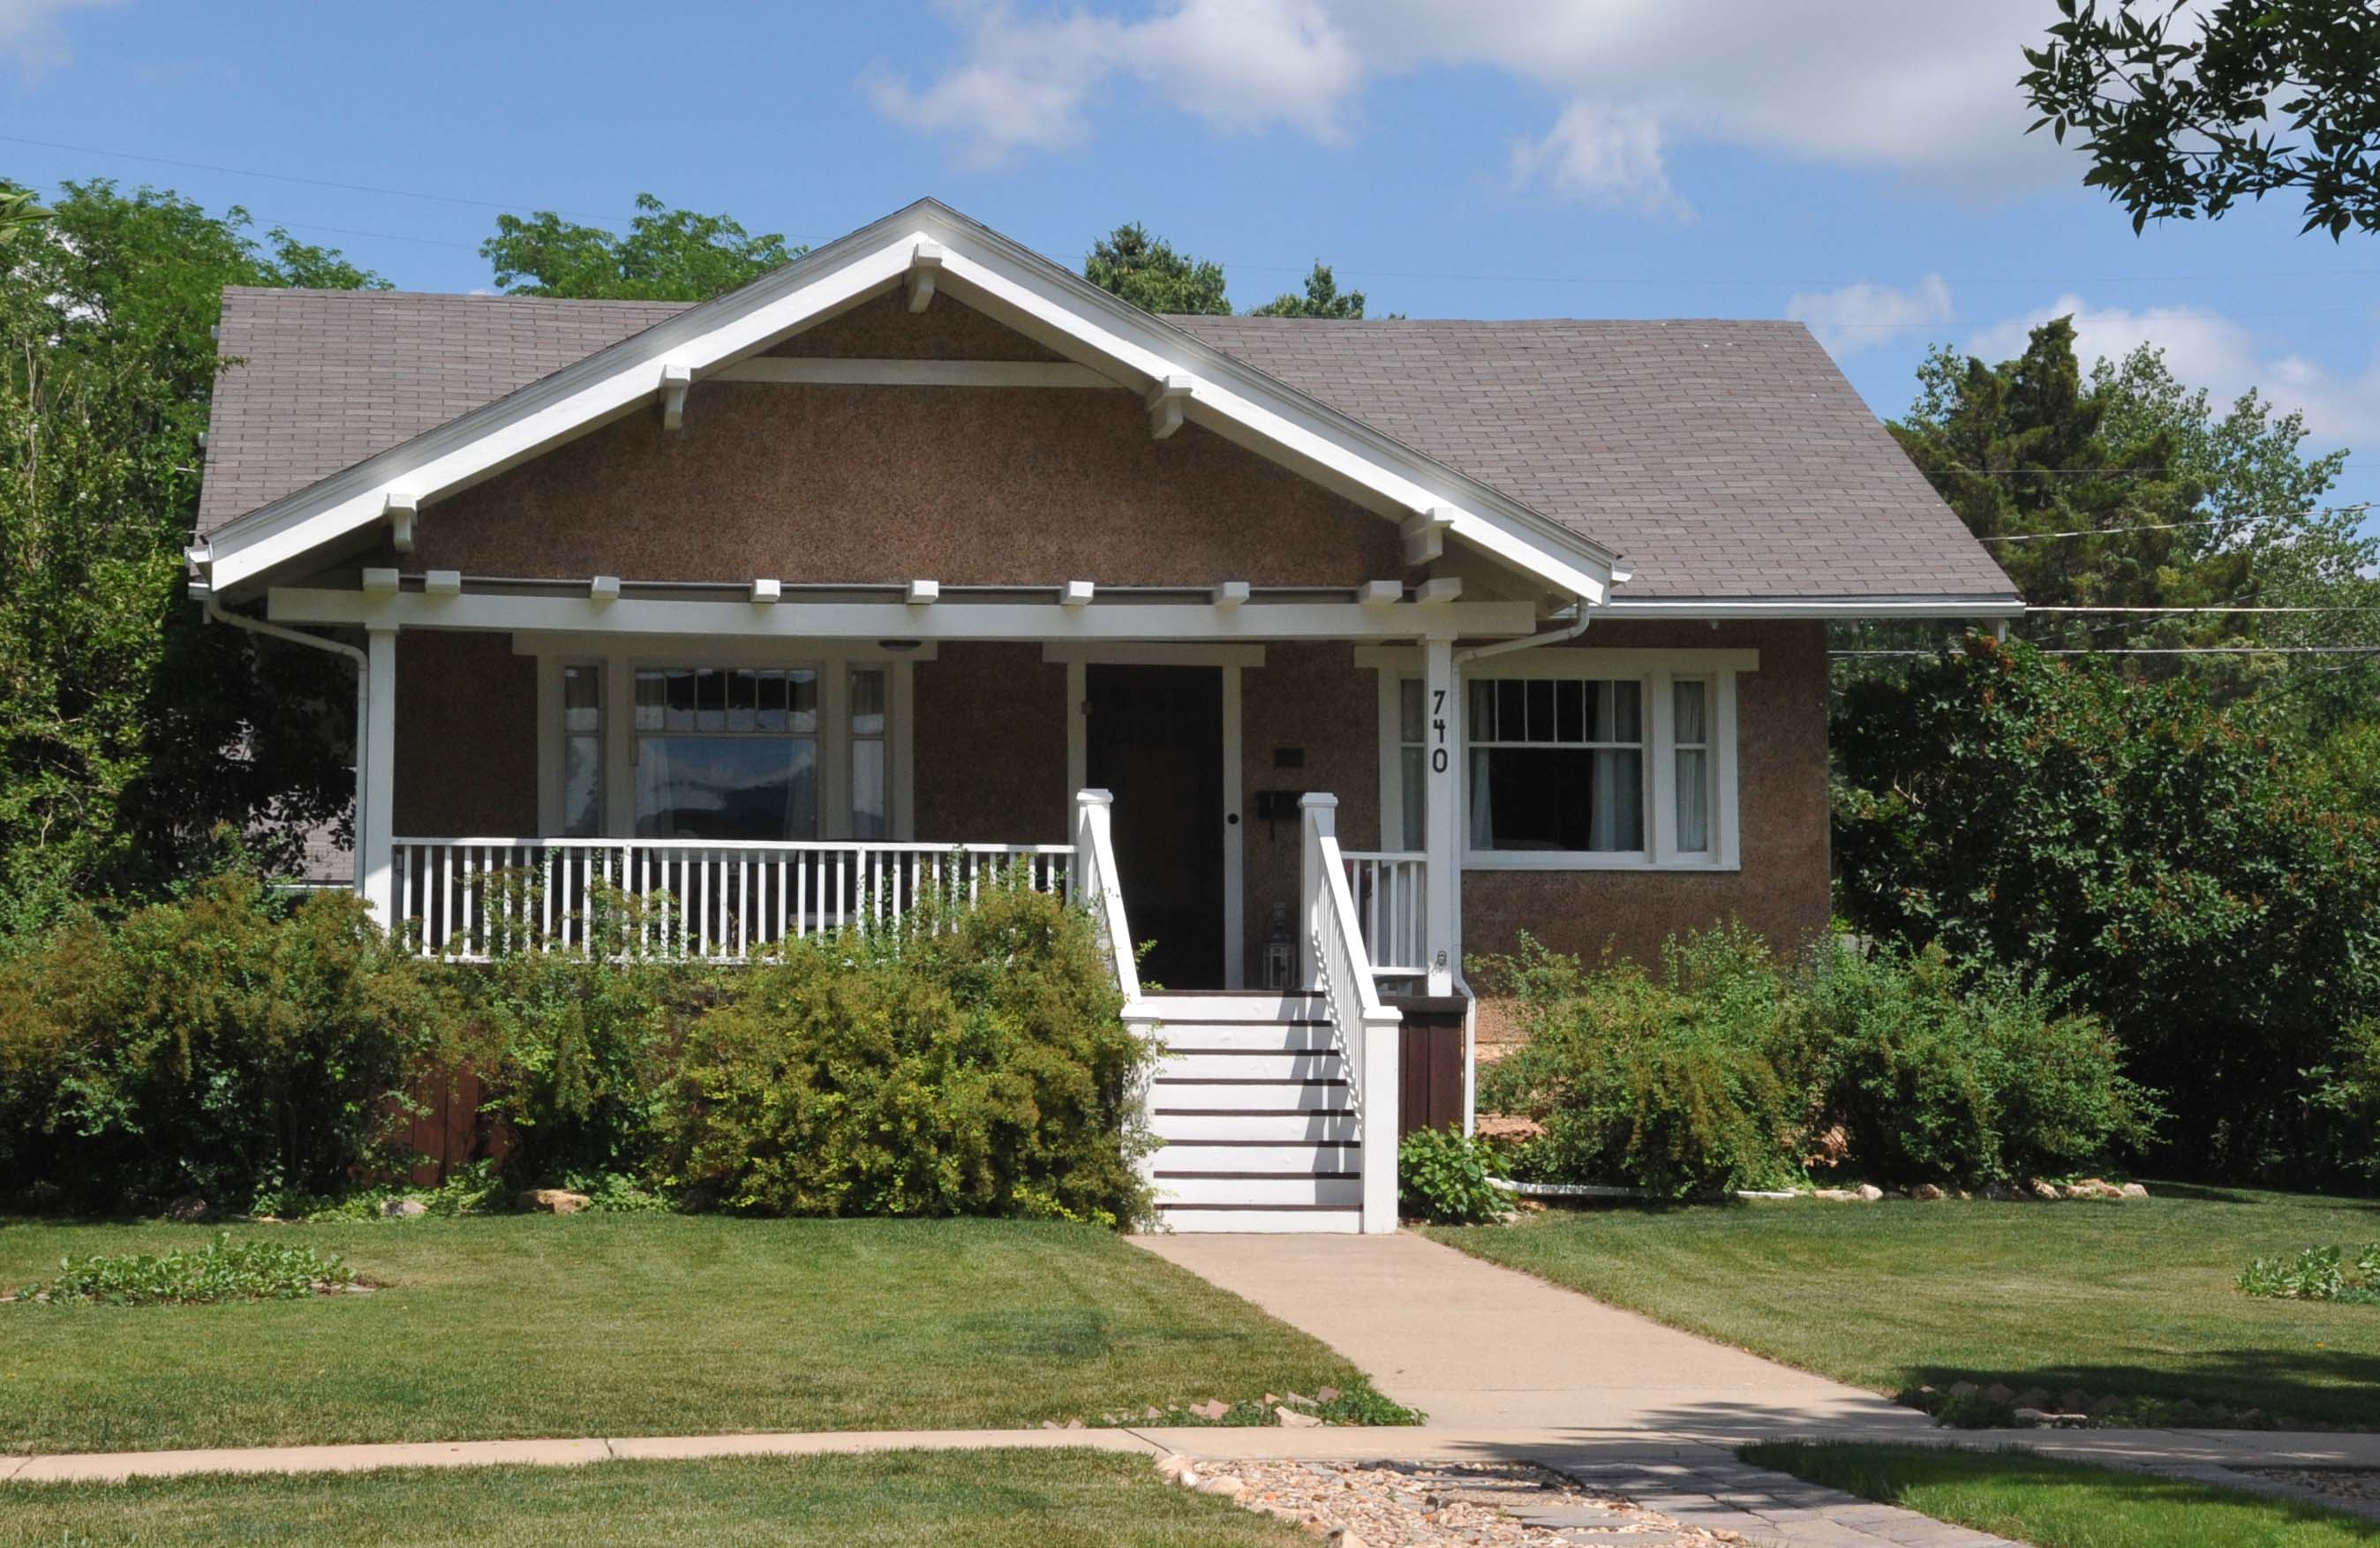 file baker bungalow spearfish lawrence county